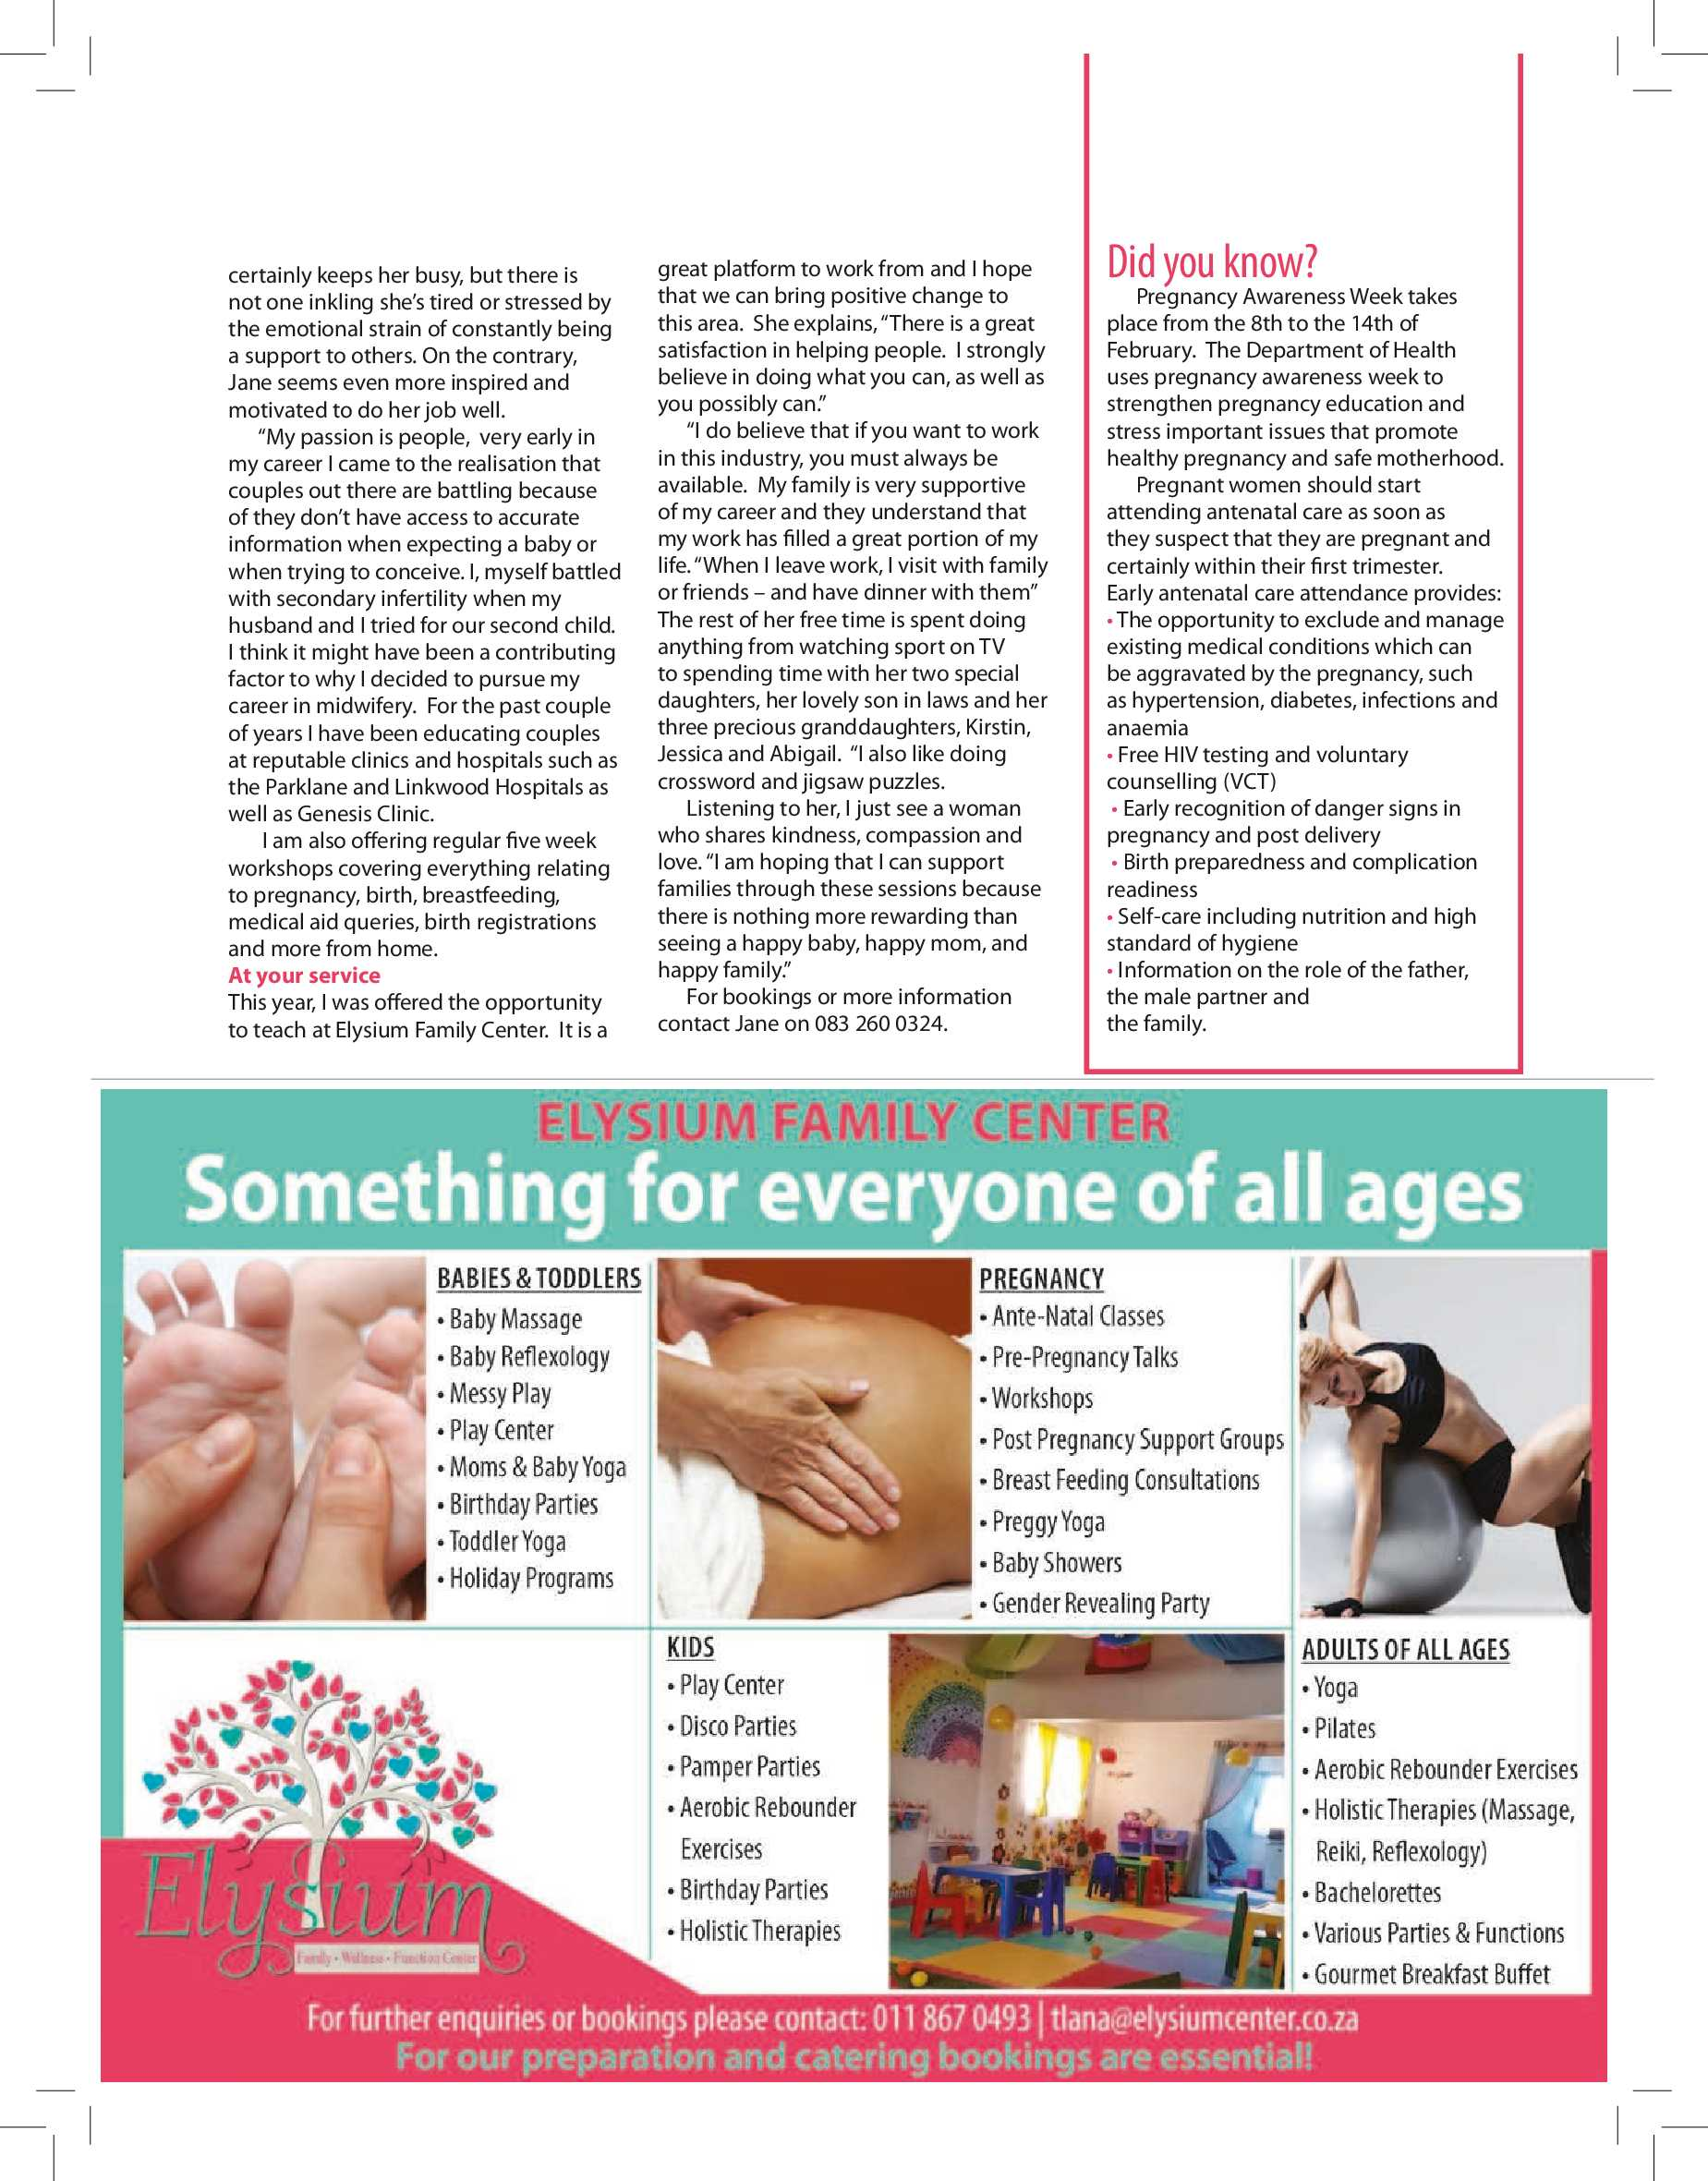 get-it-south-february-2017-epapers-page-17